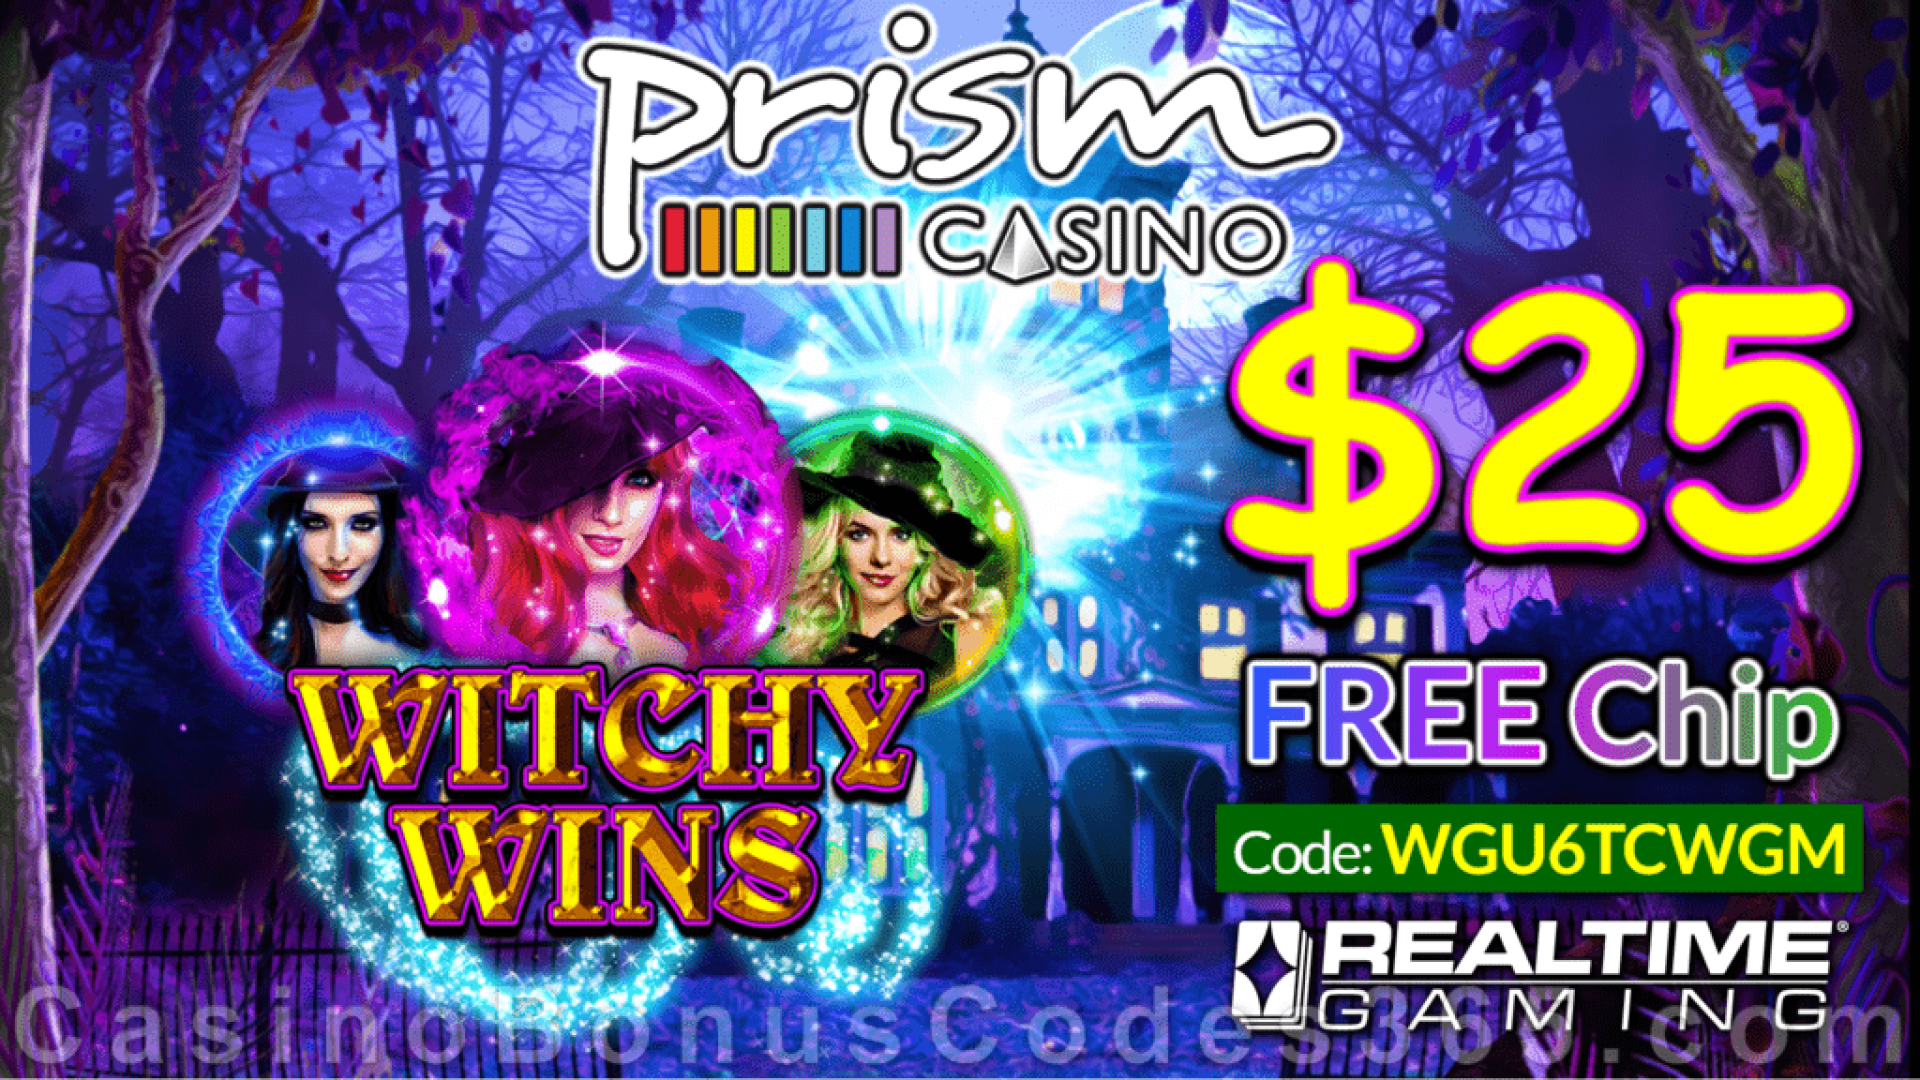 Prism Casino New RTG Game Witchy Wins $25 FREE Chip No Deposit Special Offer